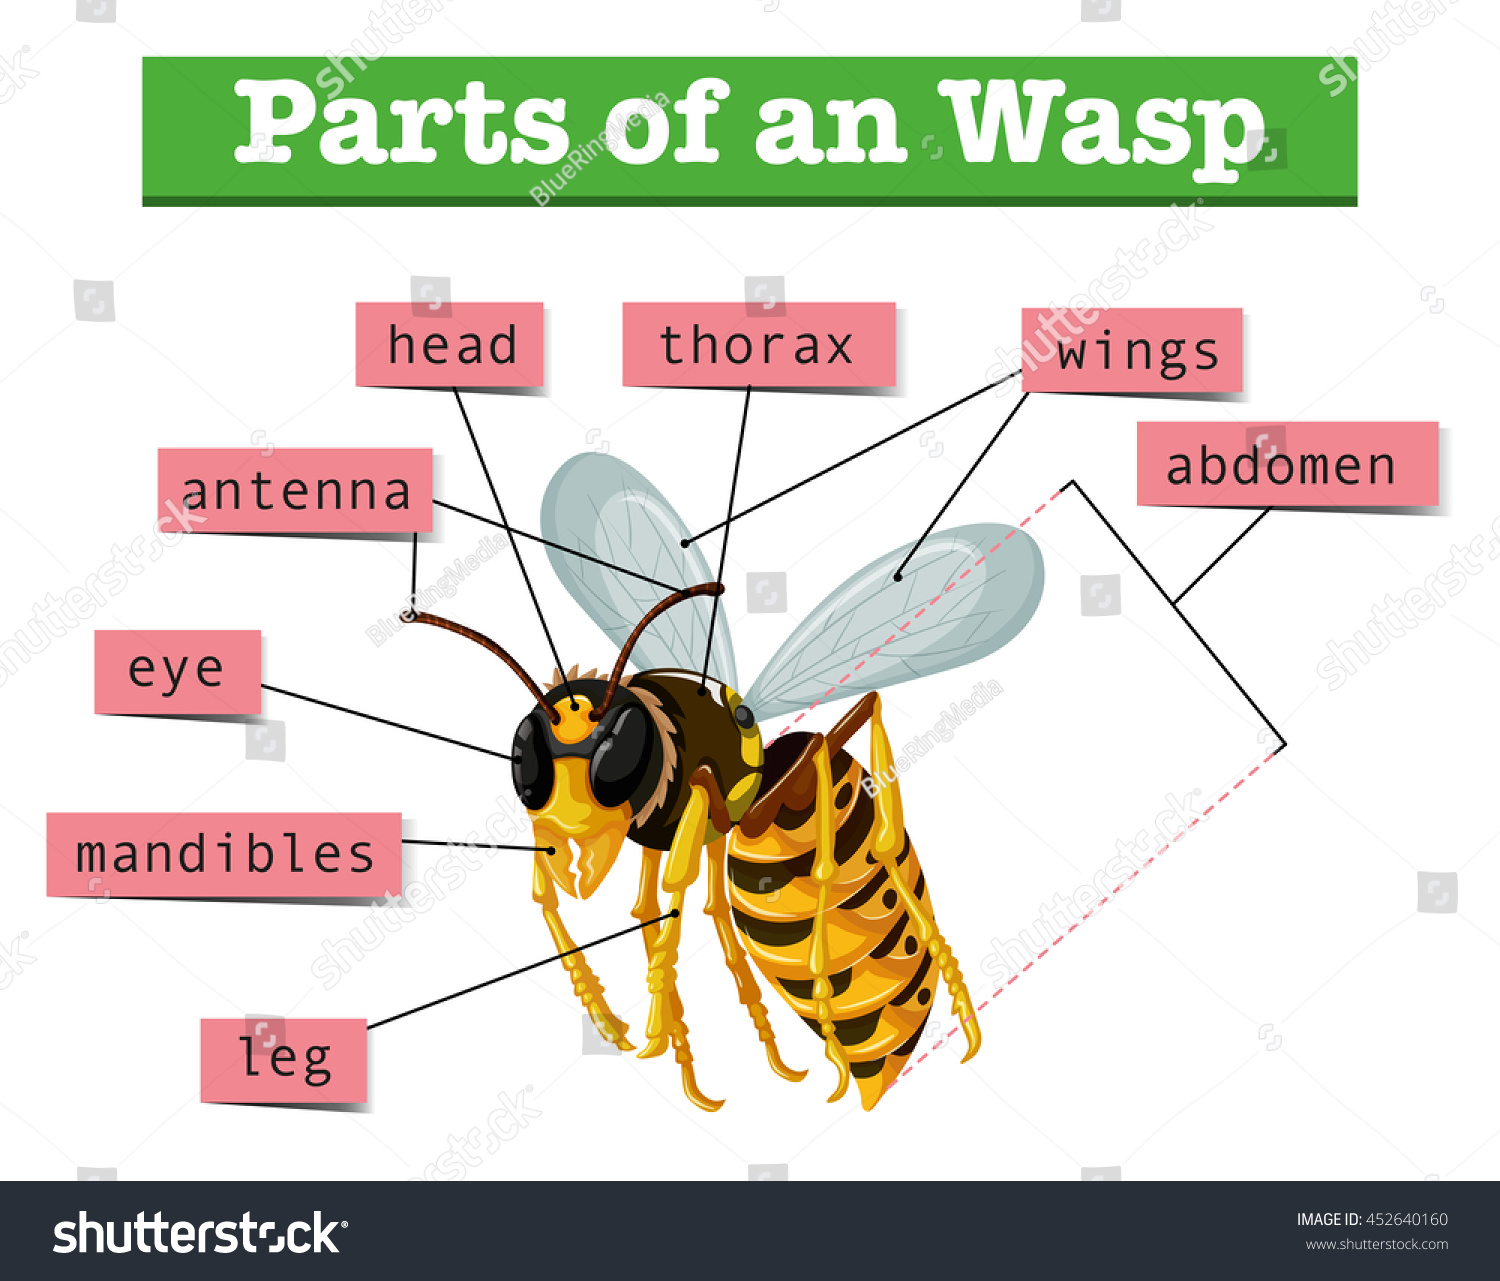 Anatomy Wasp Words Illustration Stock Vector Hd Royalty Free